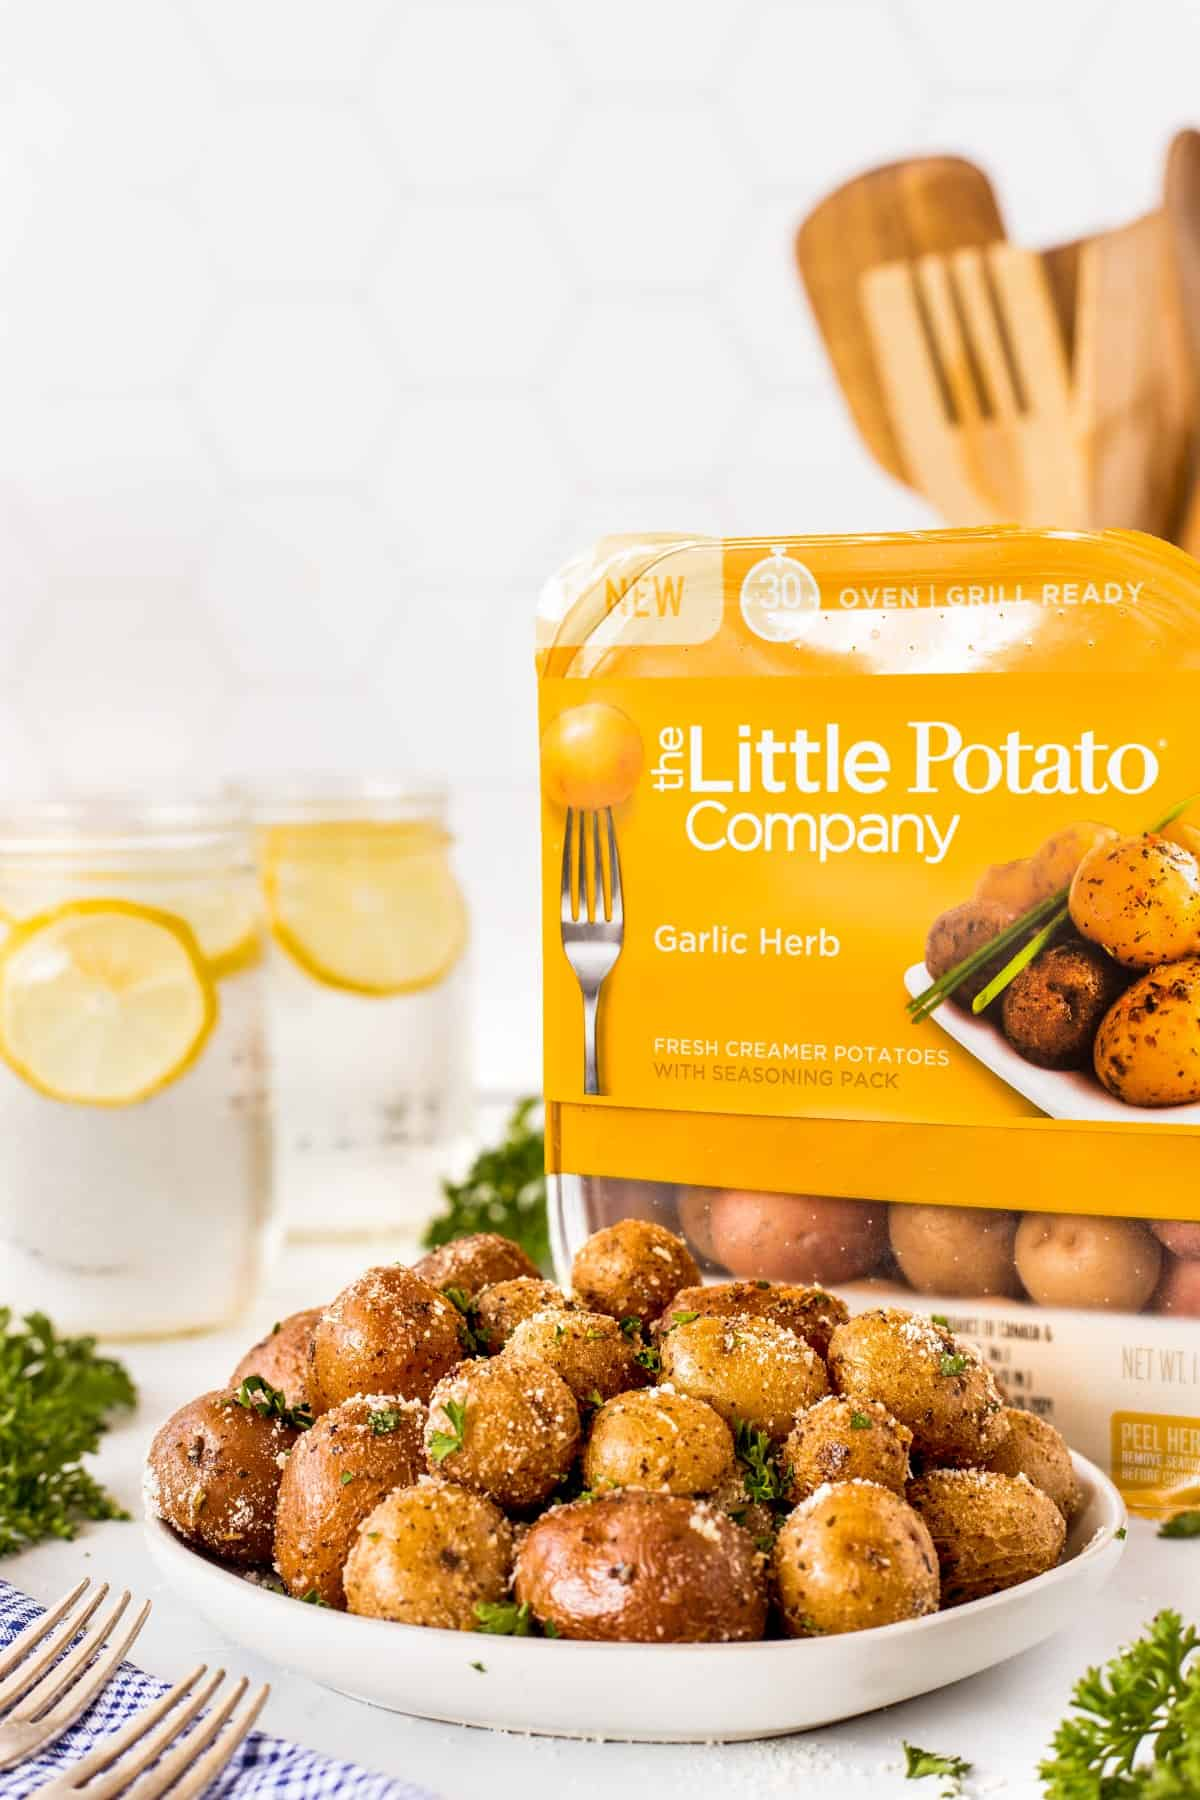 Garlic Herb Potatoes in a bowl with a package of The Little Potato Company in the background.